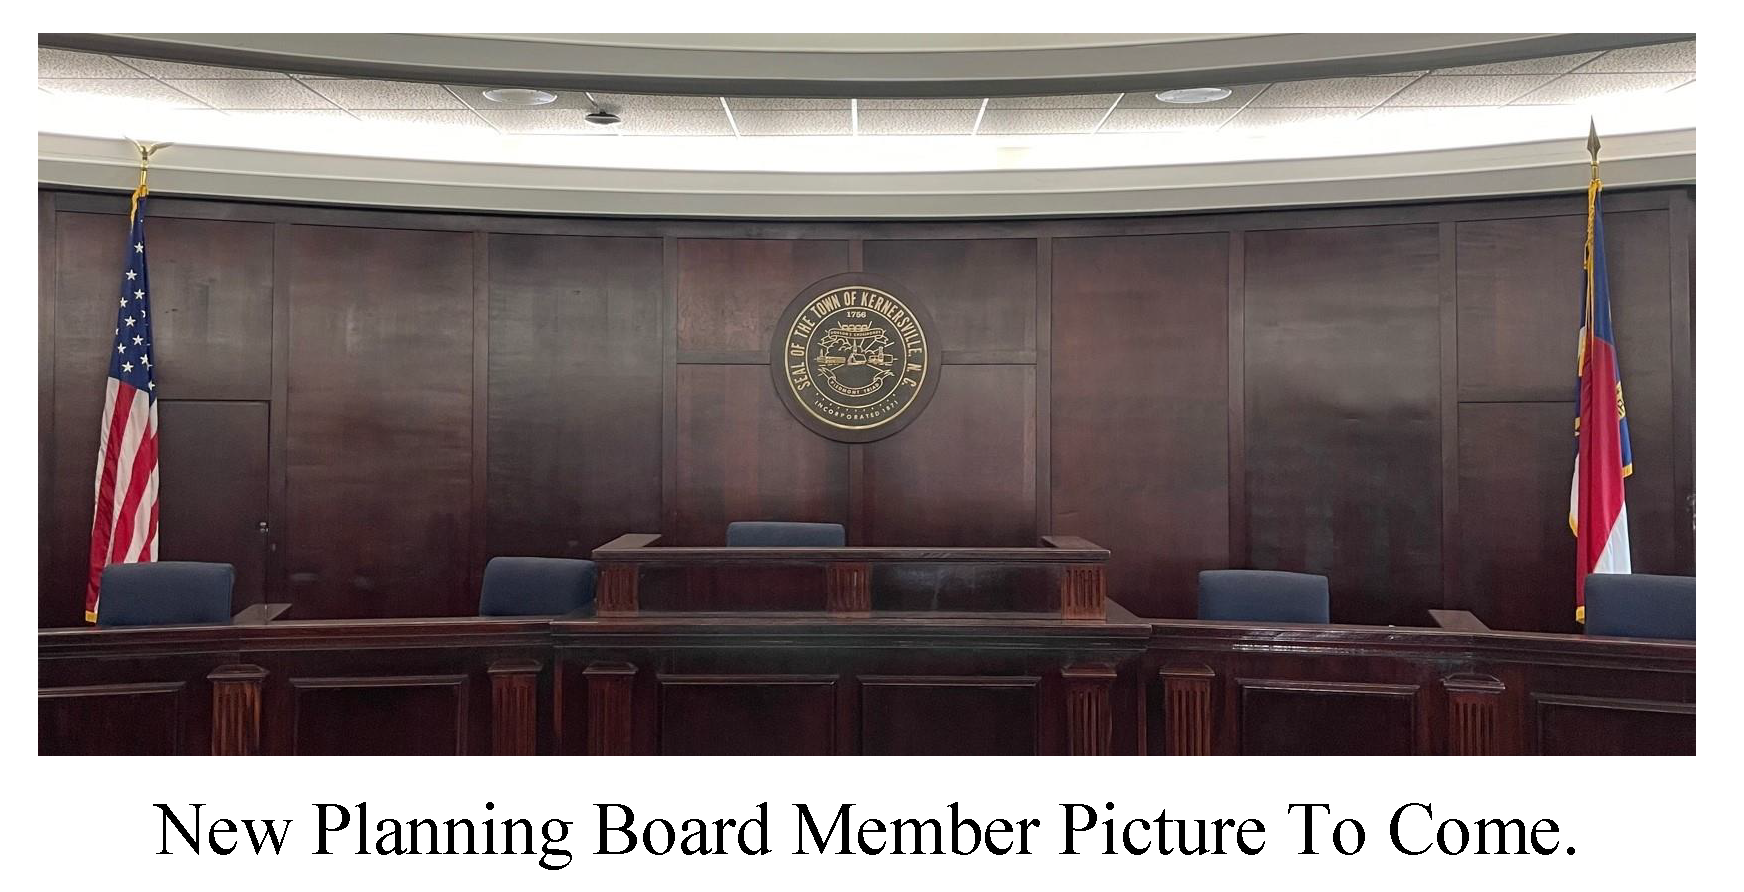 Picture of Planning Board